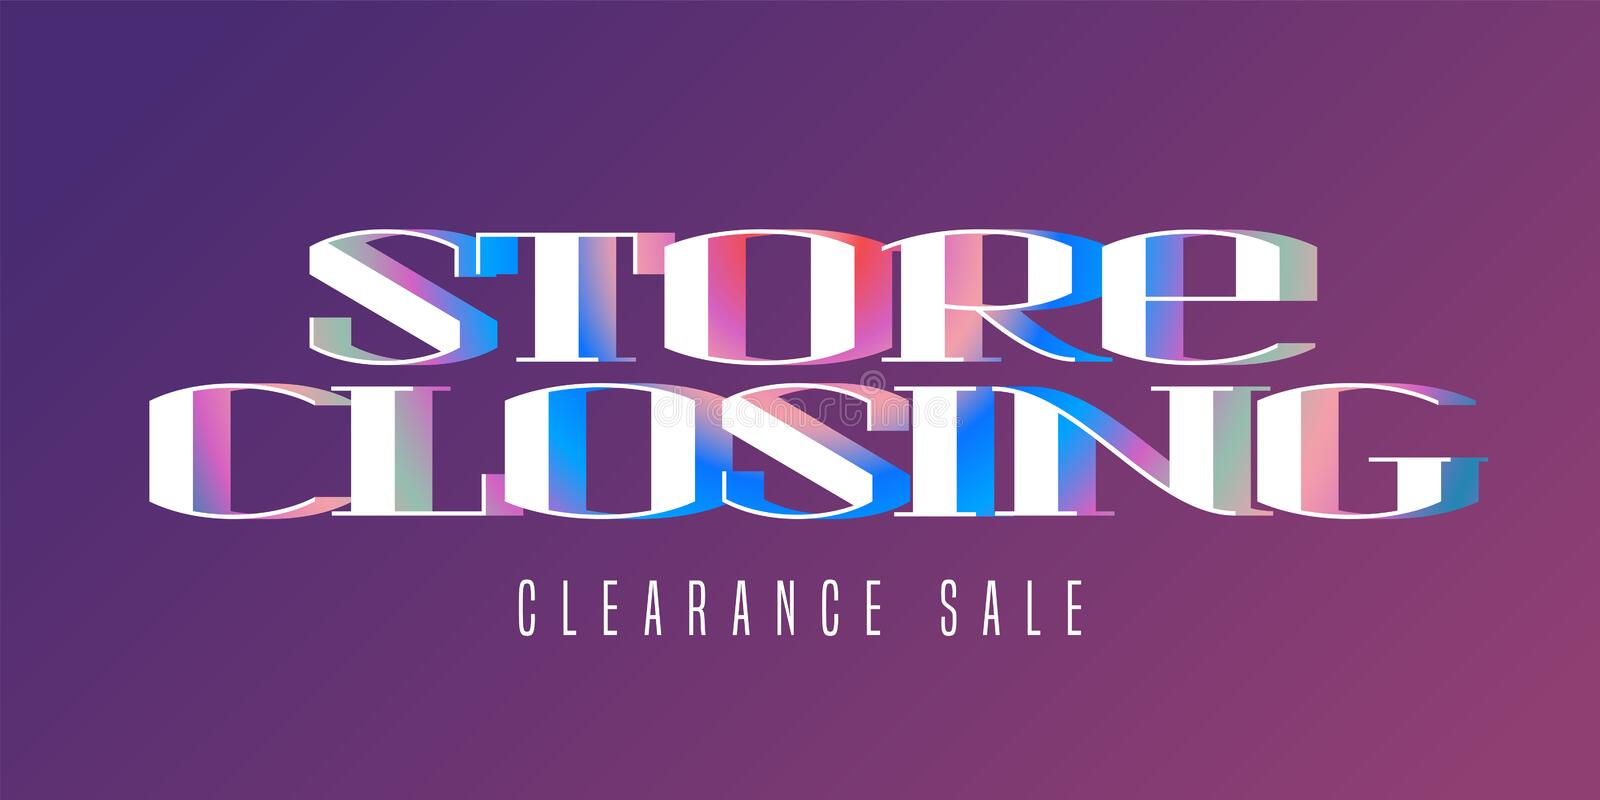 store closing sale vector illustration background with geometric